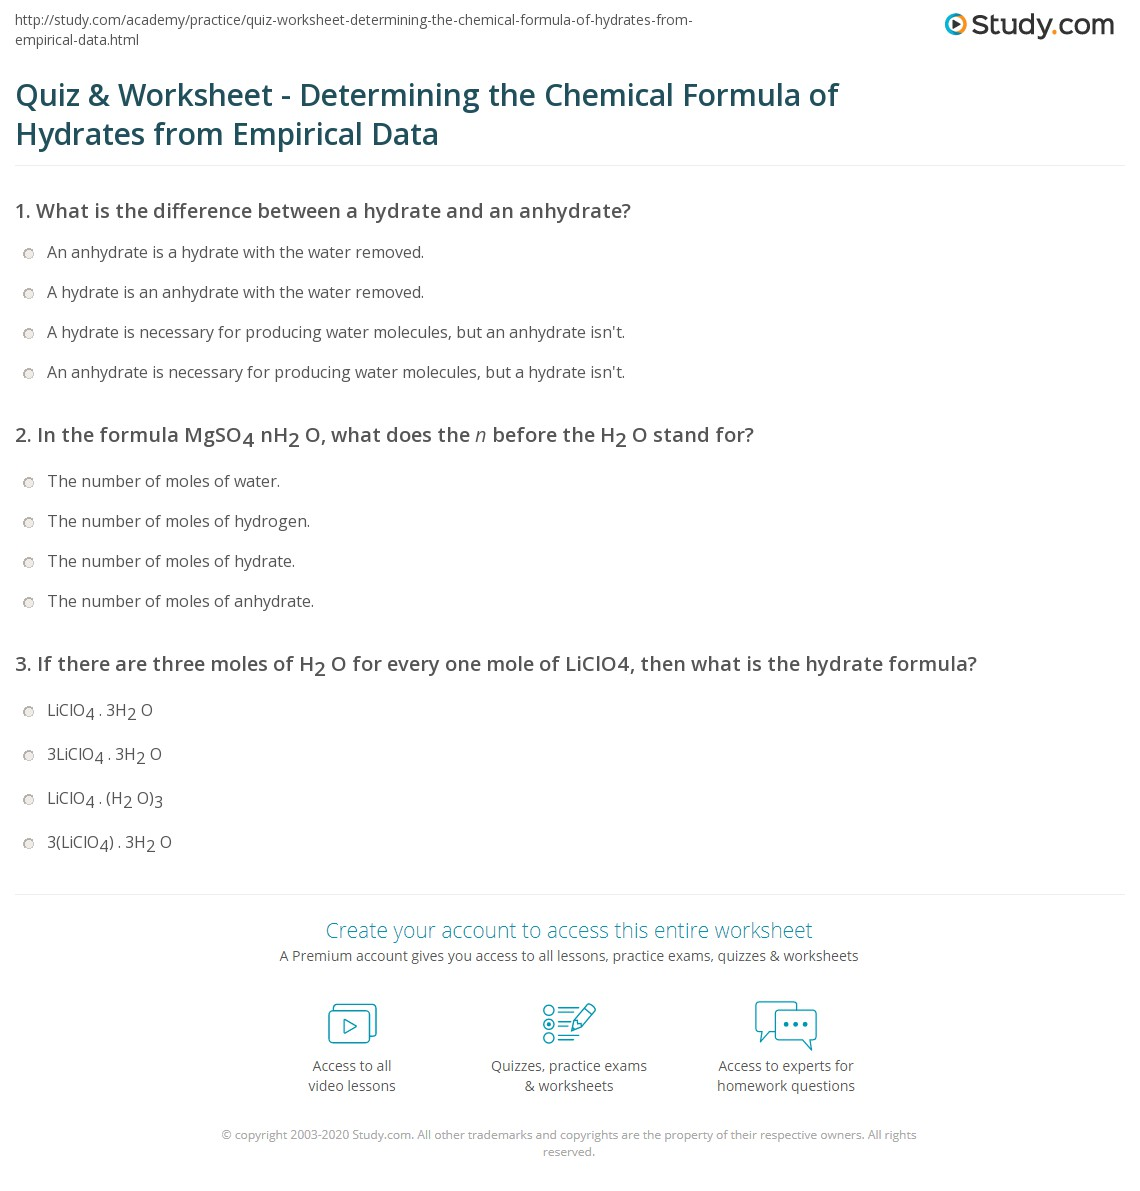 Worksheets Chemical Formula Writing Worksheet Answers quiz worksheet determining the chemical formula of hydrates print from empirical data worksheet